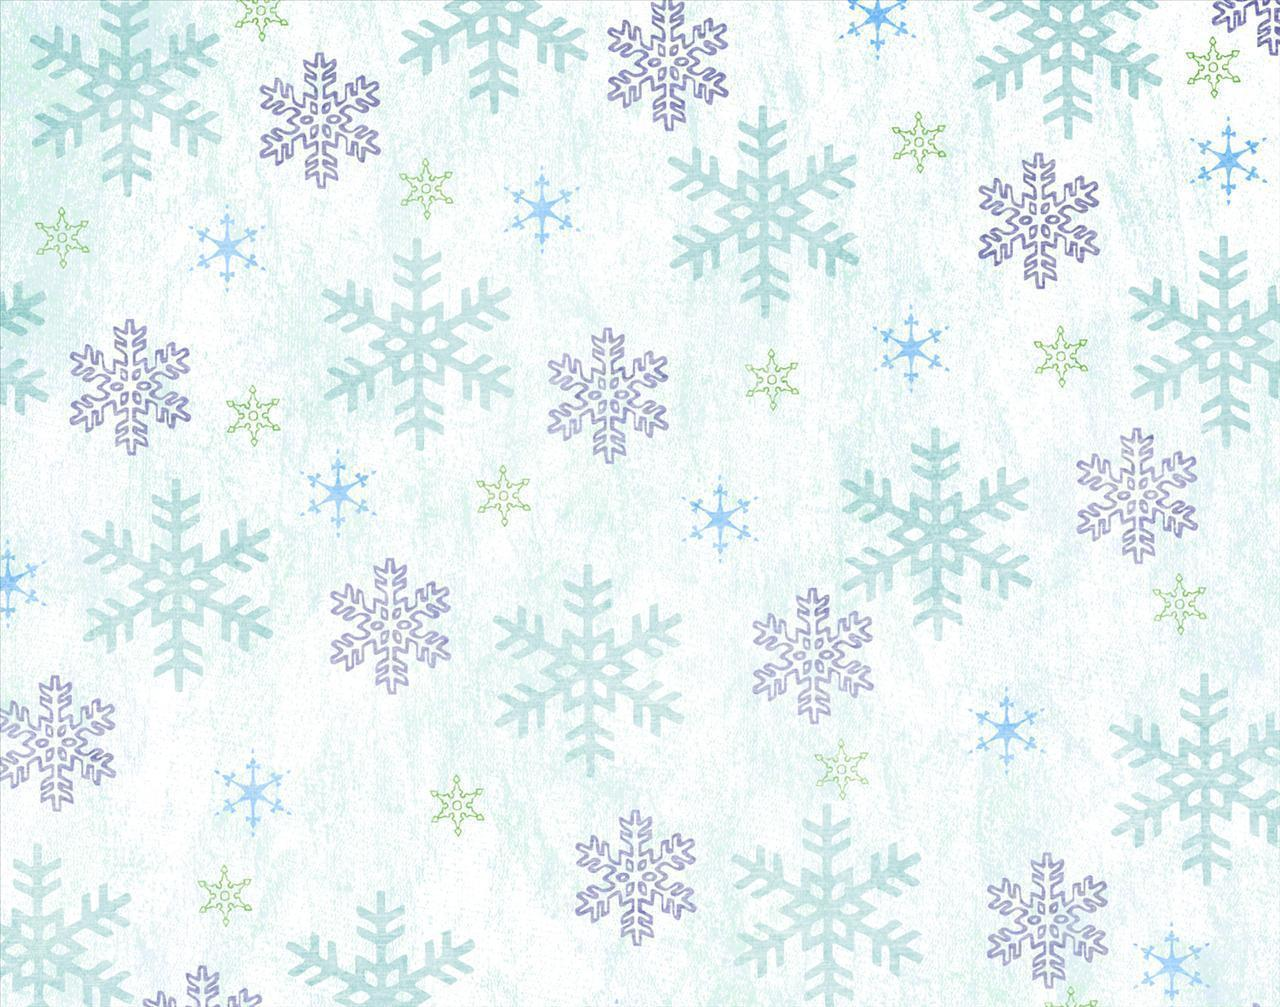 Snowflake Tumblr Background snowflake backgrounds - wallpaper cave